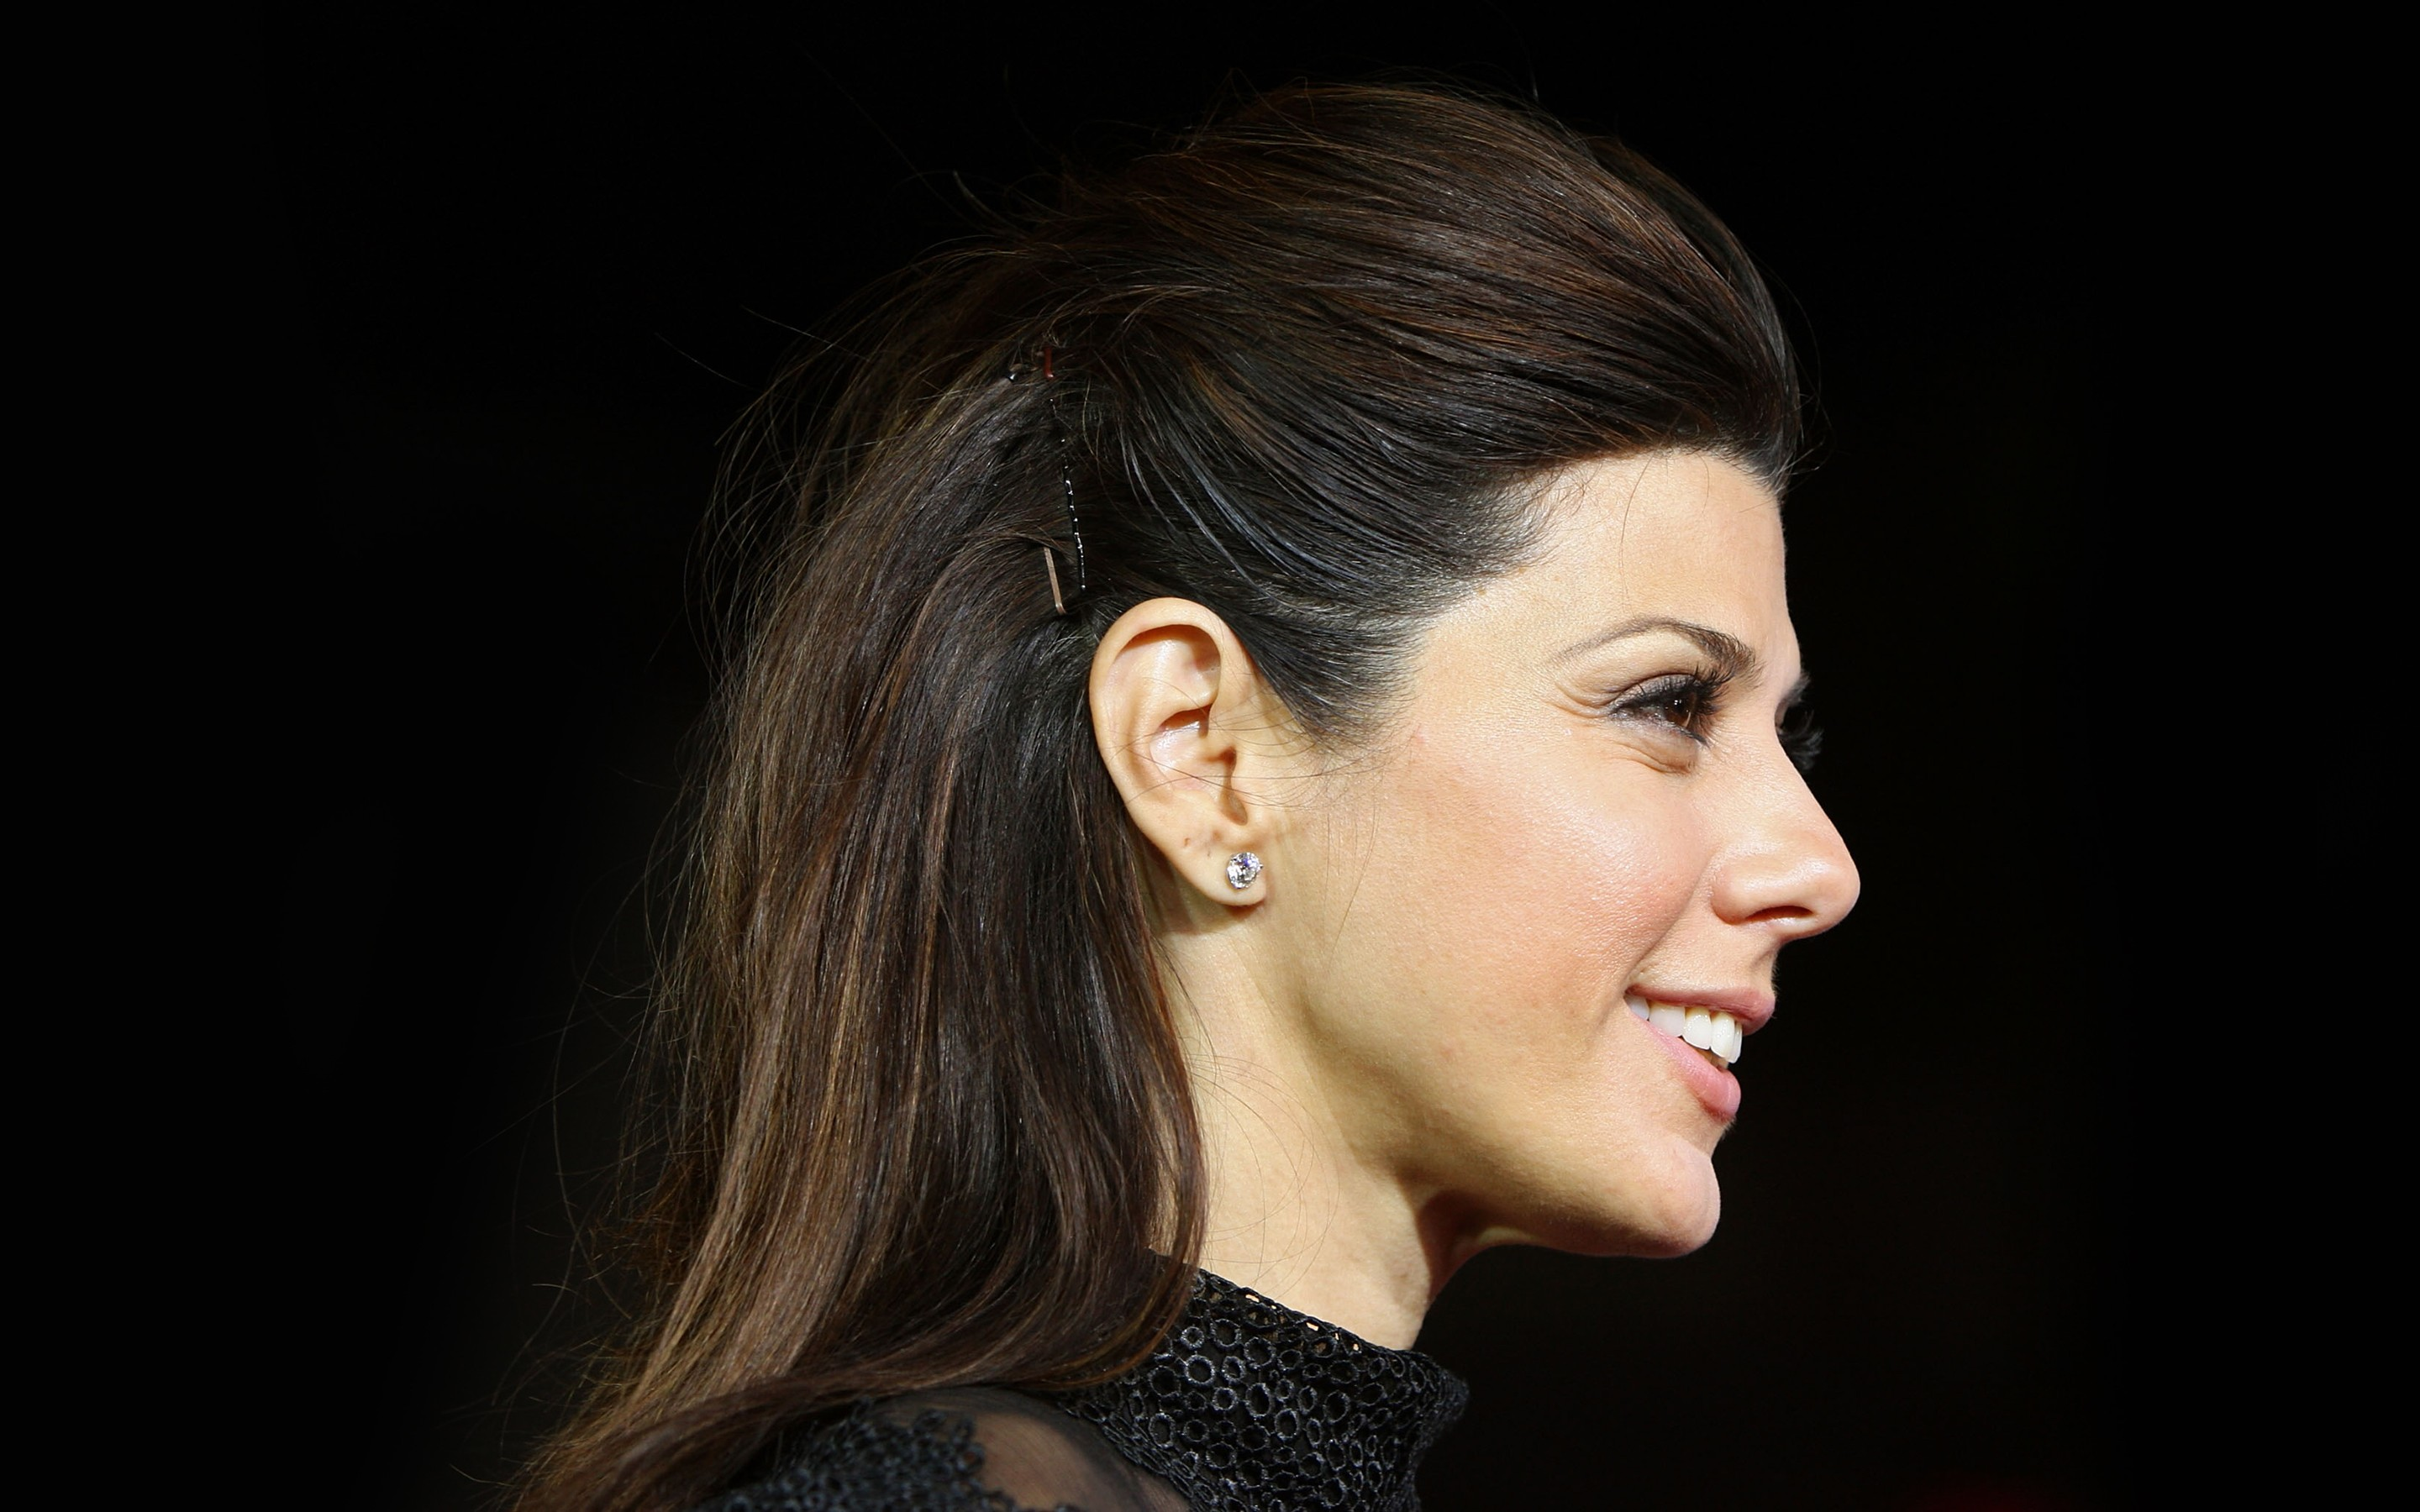 10 Hd Marisa Tomei Wallpapers Hdwallsource Com